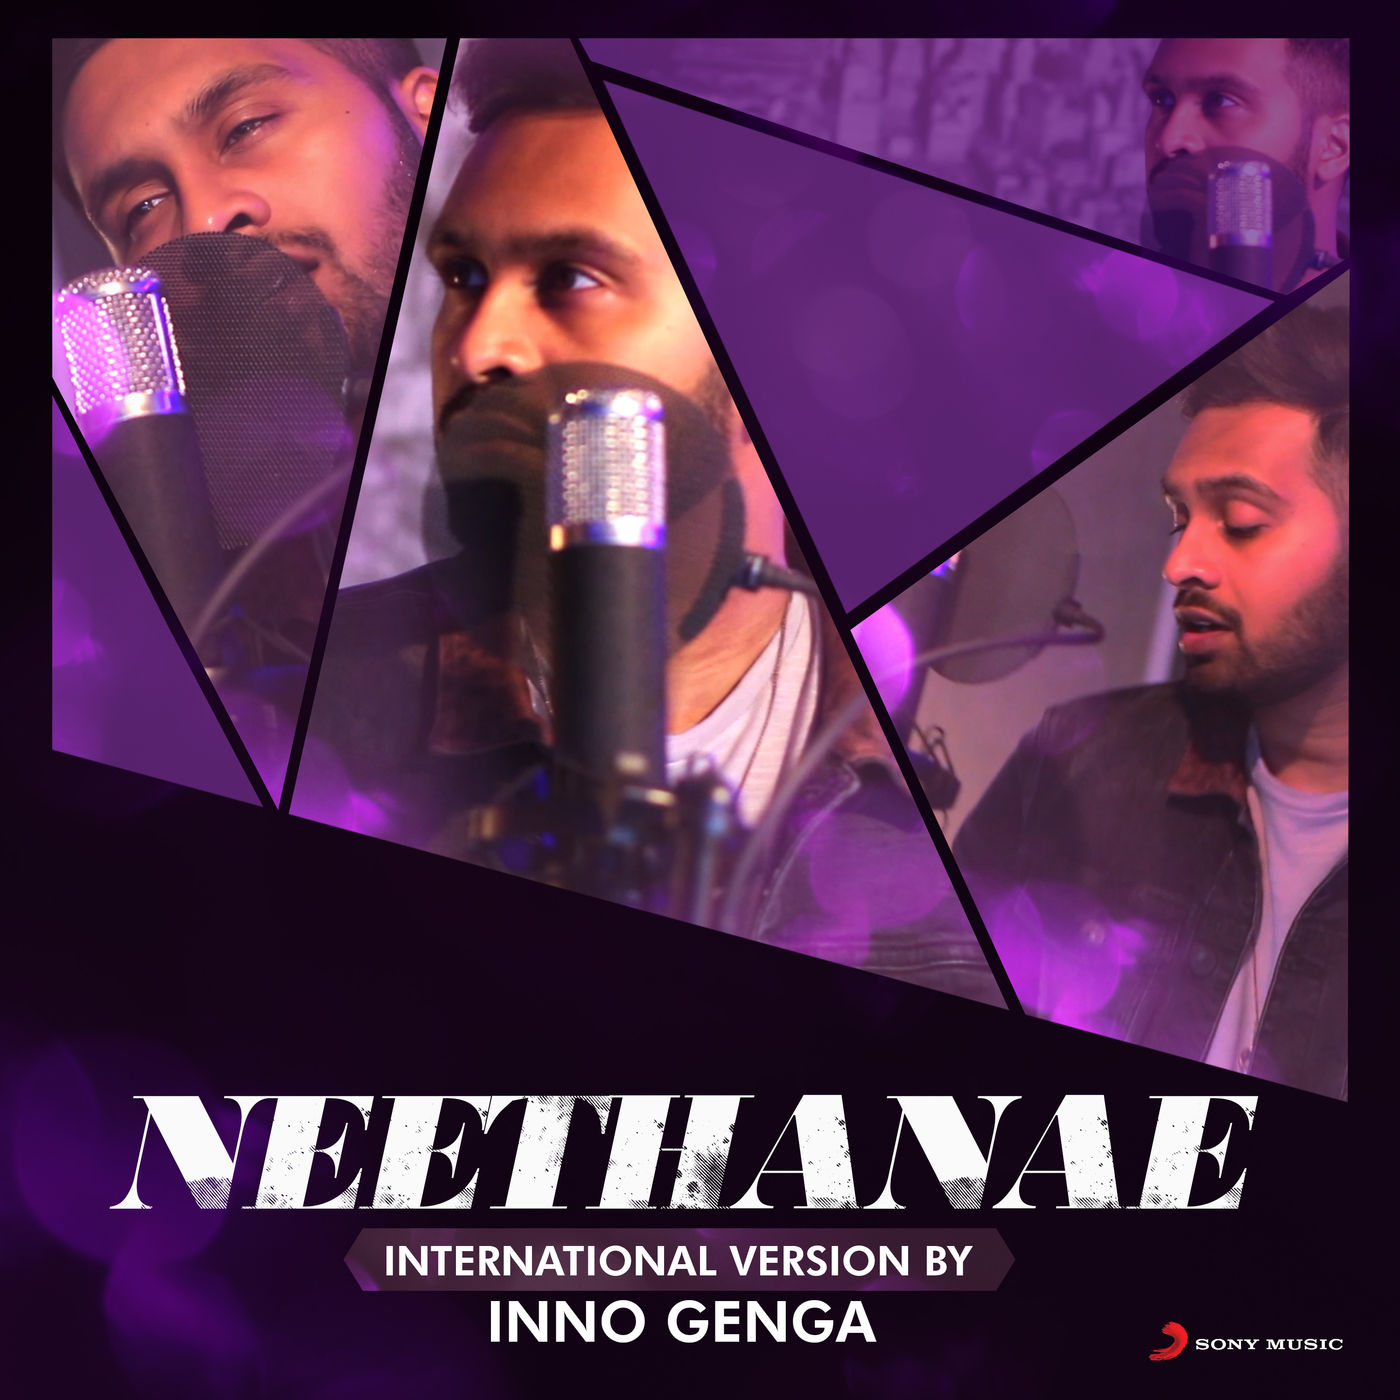 Neethanae International Version by Inno Genga in 24 BIT